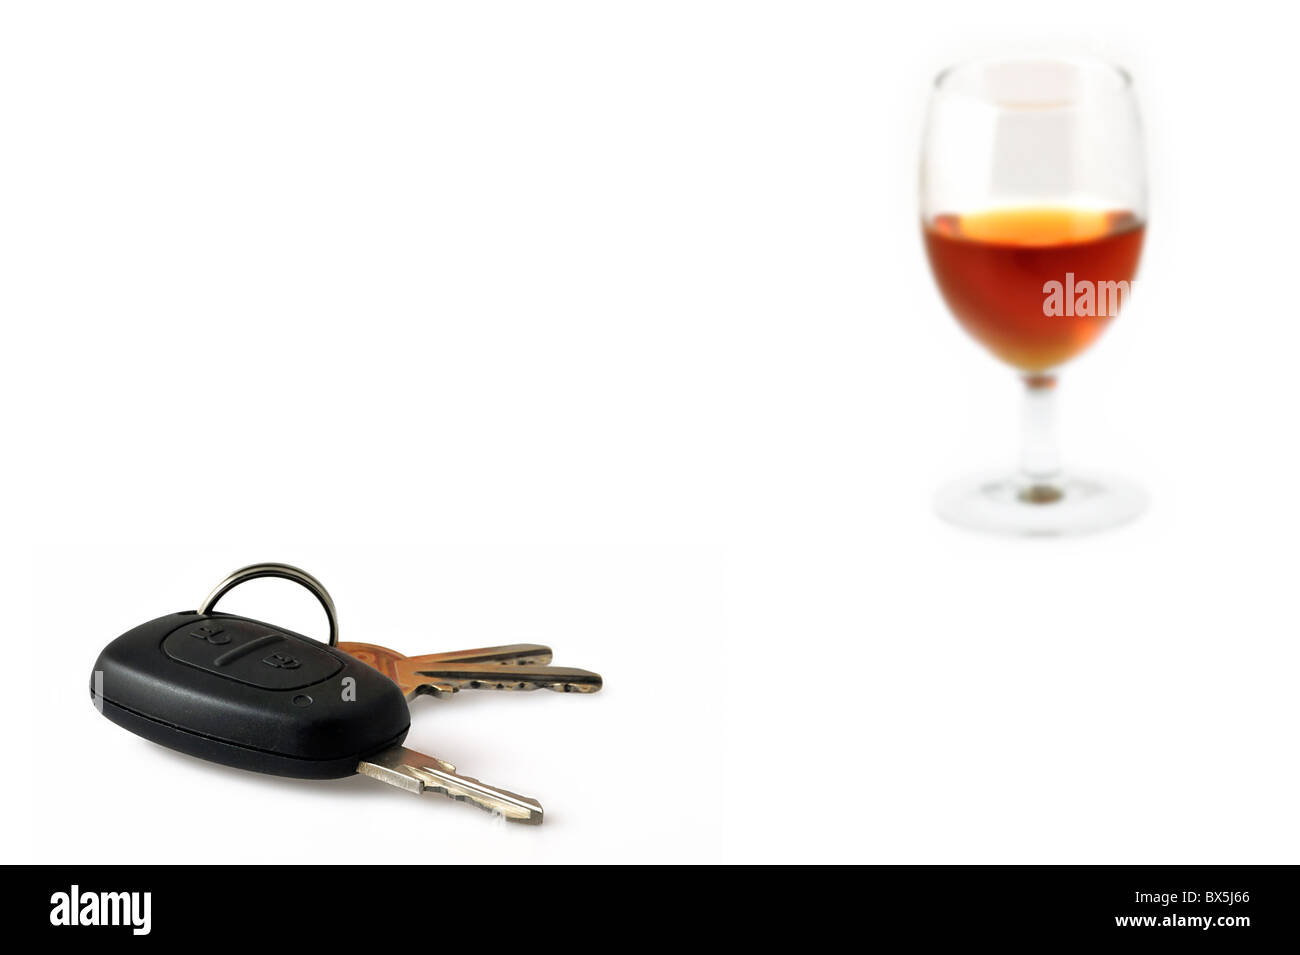 Car key and glass filled with alcohol as conceptual subjects to illustrate irresponsible driving Stock Photo